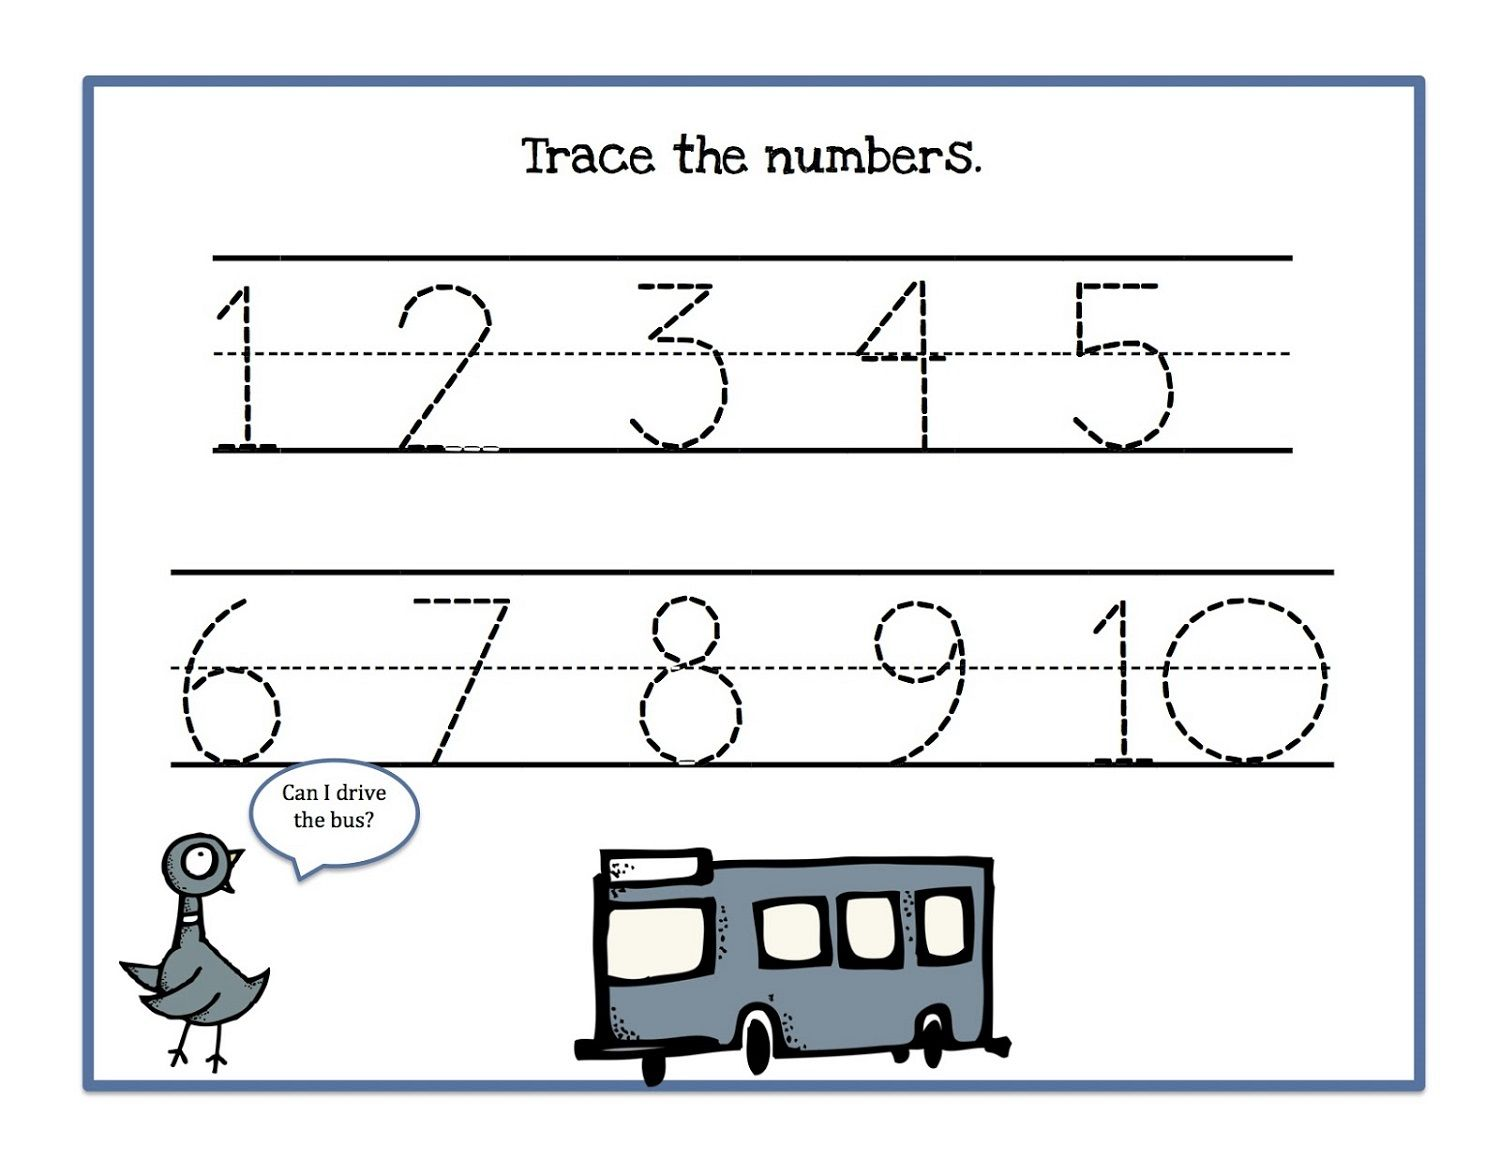 worksheet Tracing Numbers 1-10 tracing numbers 1 10 for fun learning dear joya kids joya